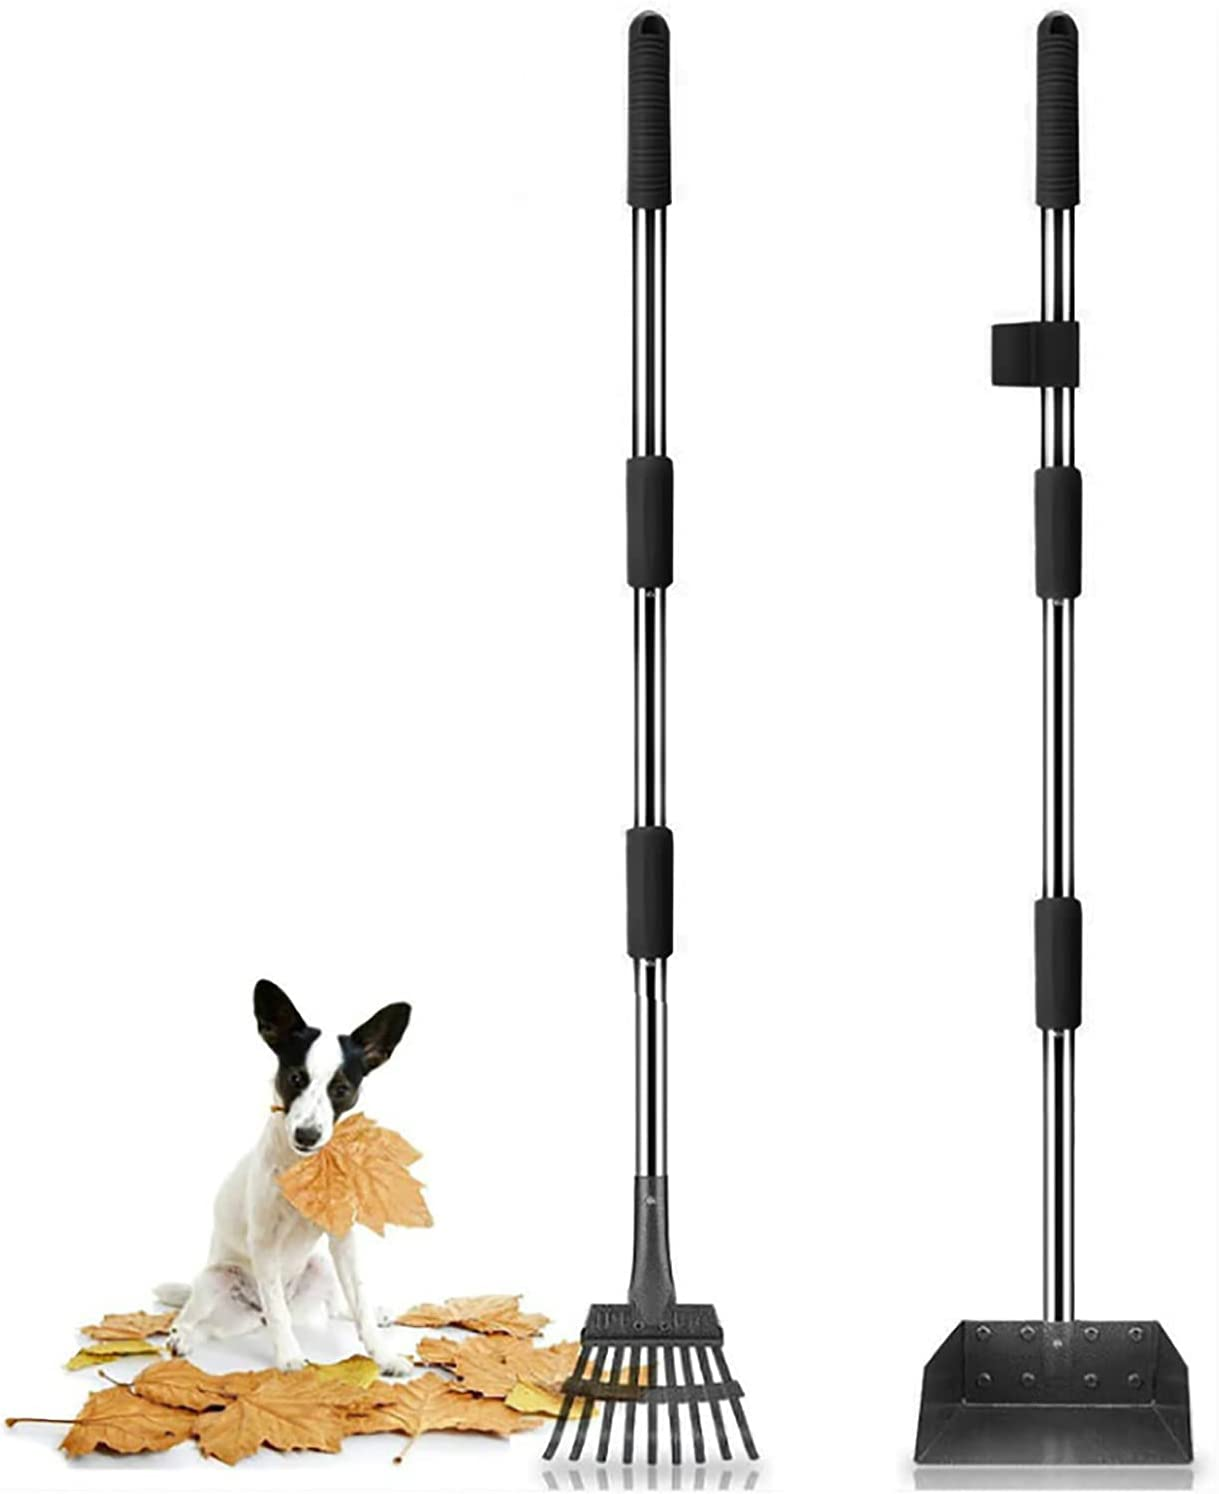 Rednut Dog Large special price Pooper Max 55% OFF Scooper Upgraded 2 and S Poop Pack Tray Spade